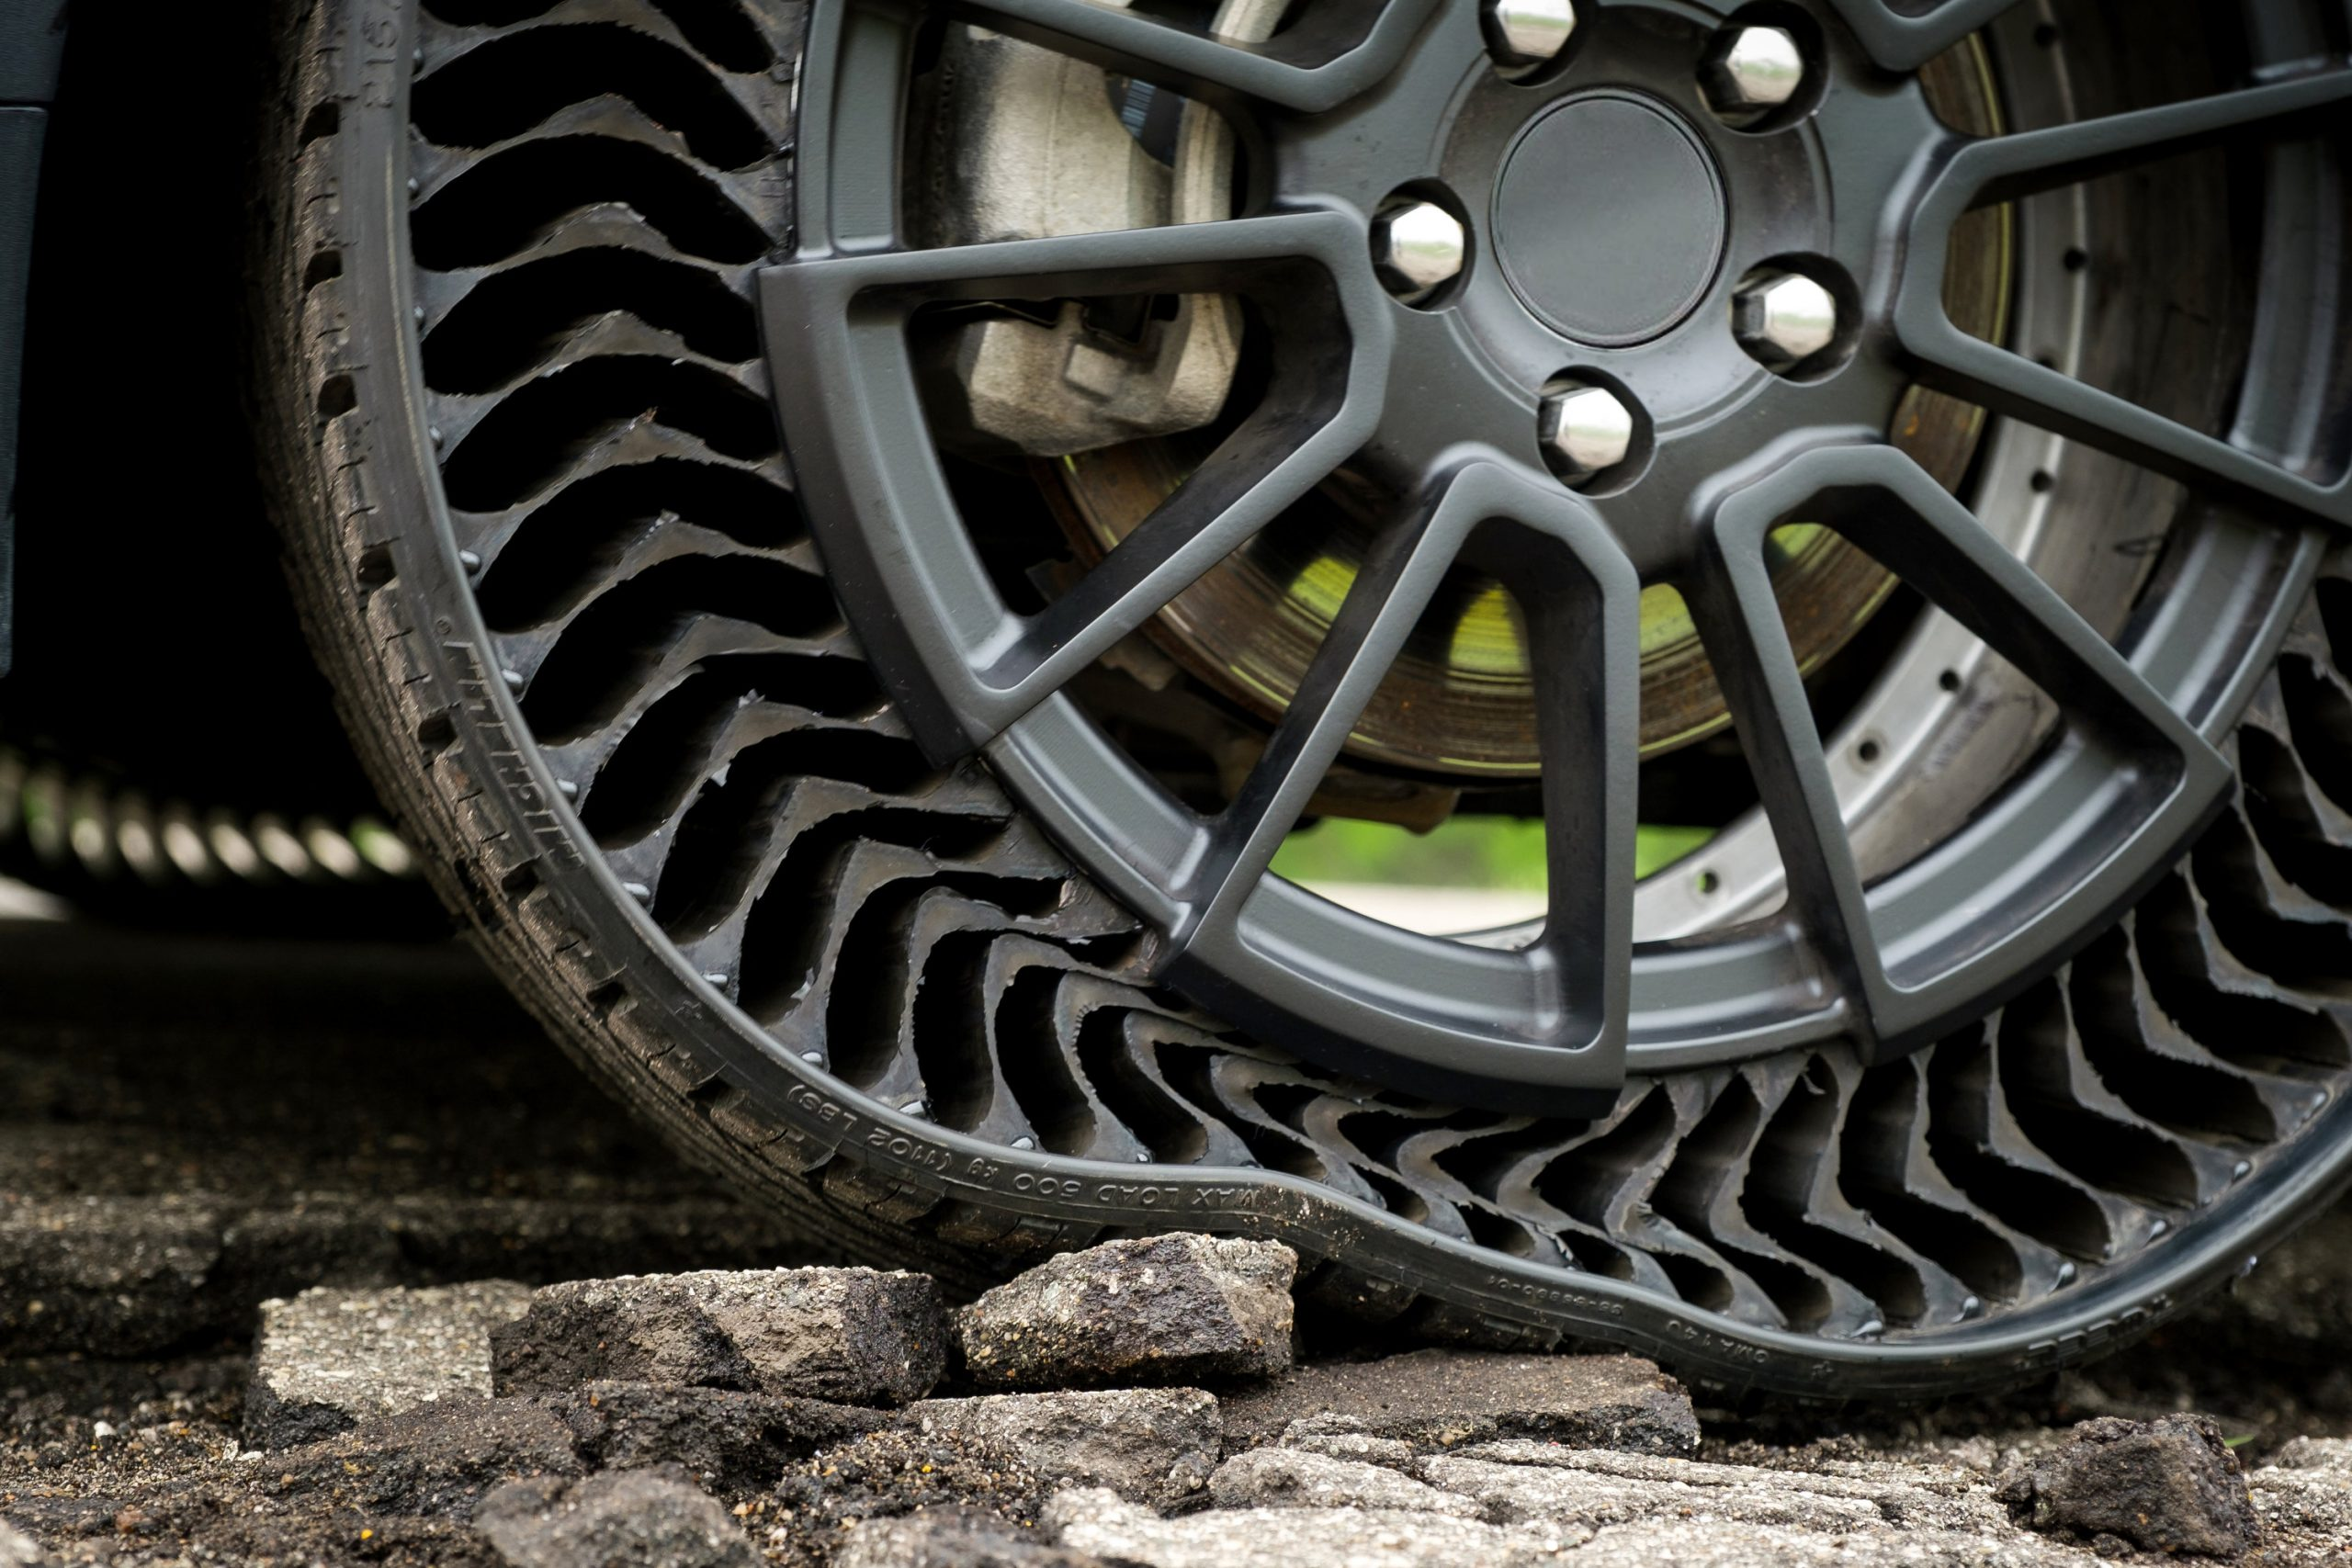 Michelin's Uptis tire is airless to eliminate the risk of punctures. Photo via Michelin.